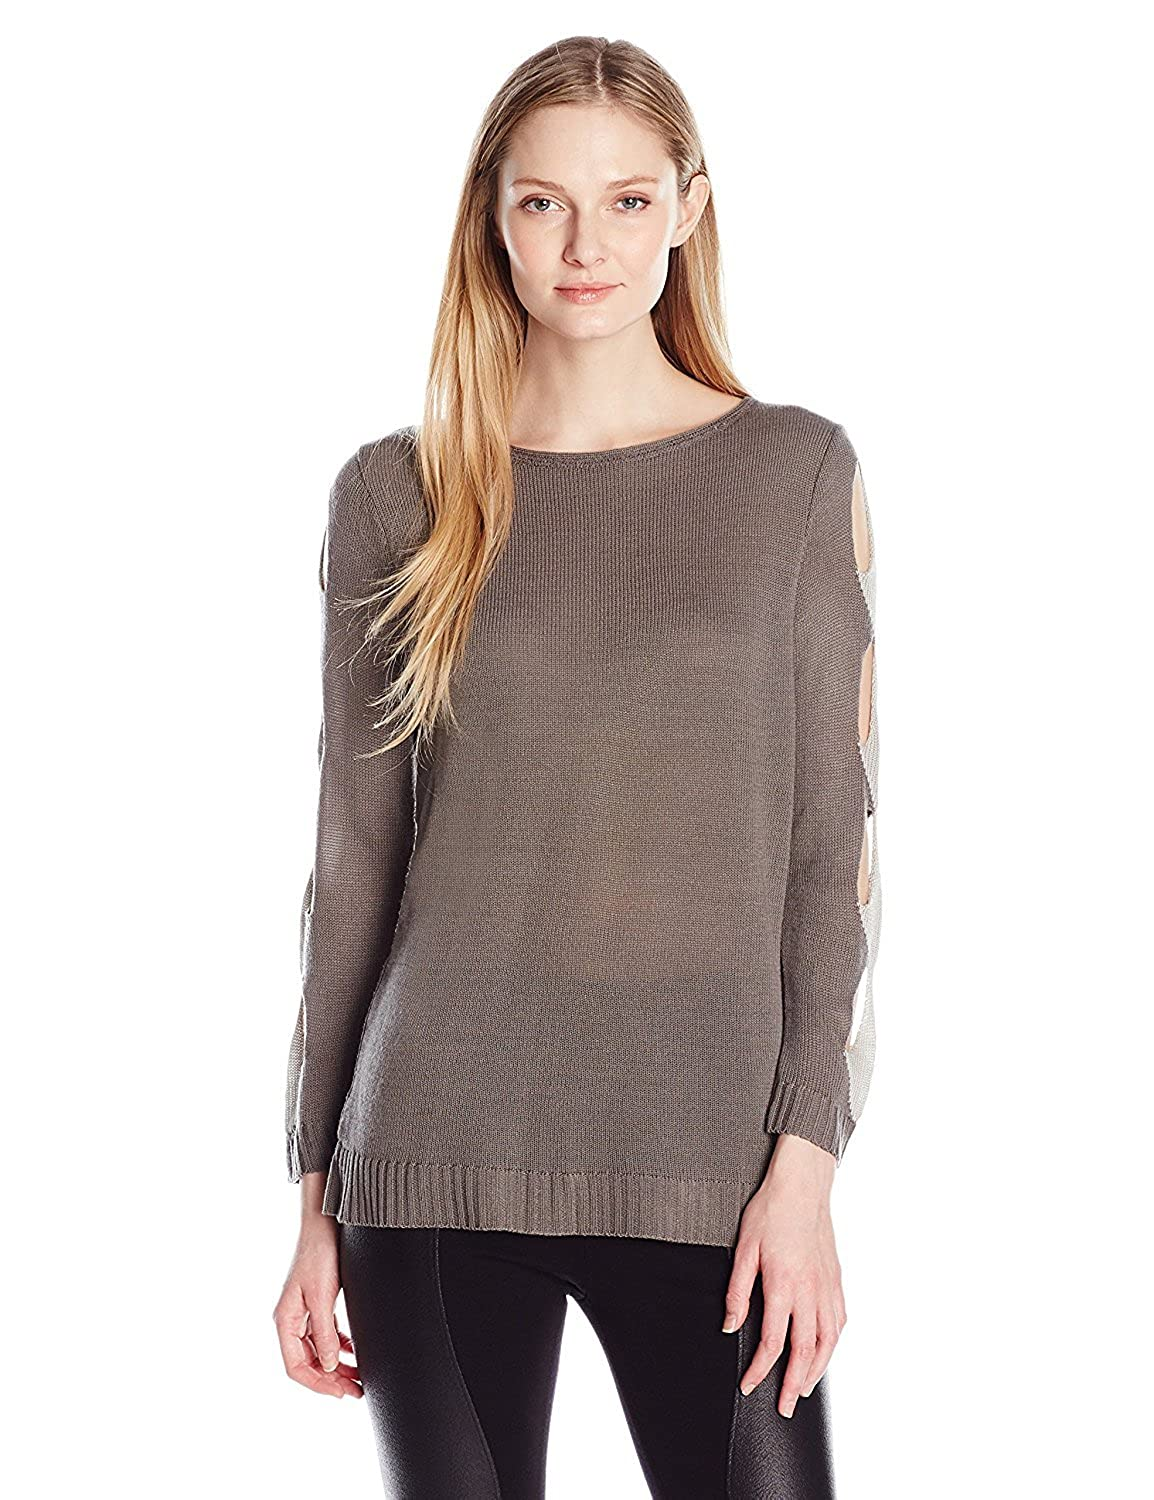 NY Collection Women's Petite Size Long Boat Neck Pull Over with Cut Out Detail Along Sleeve YSSU0696